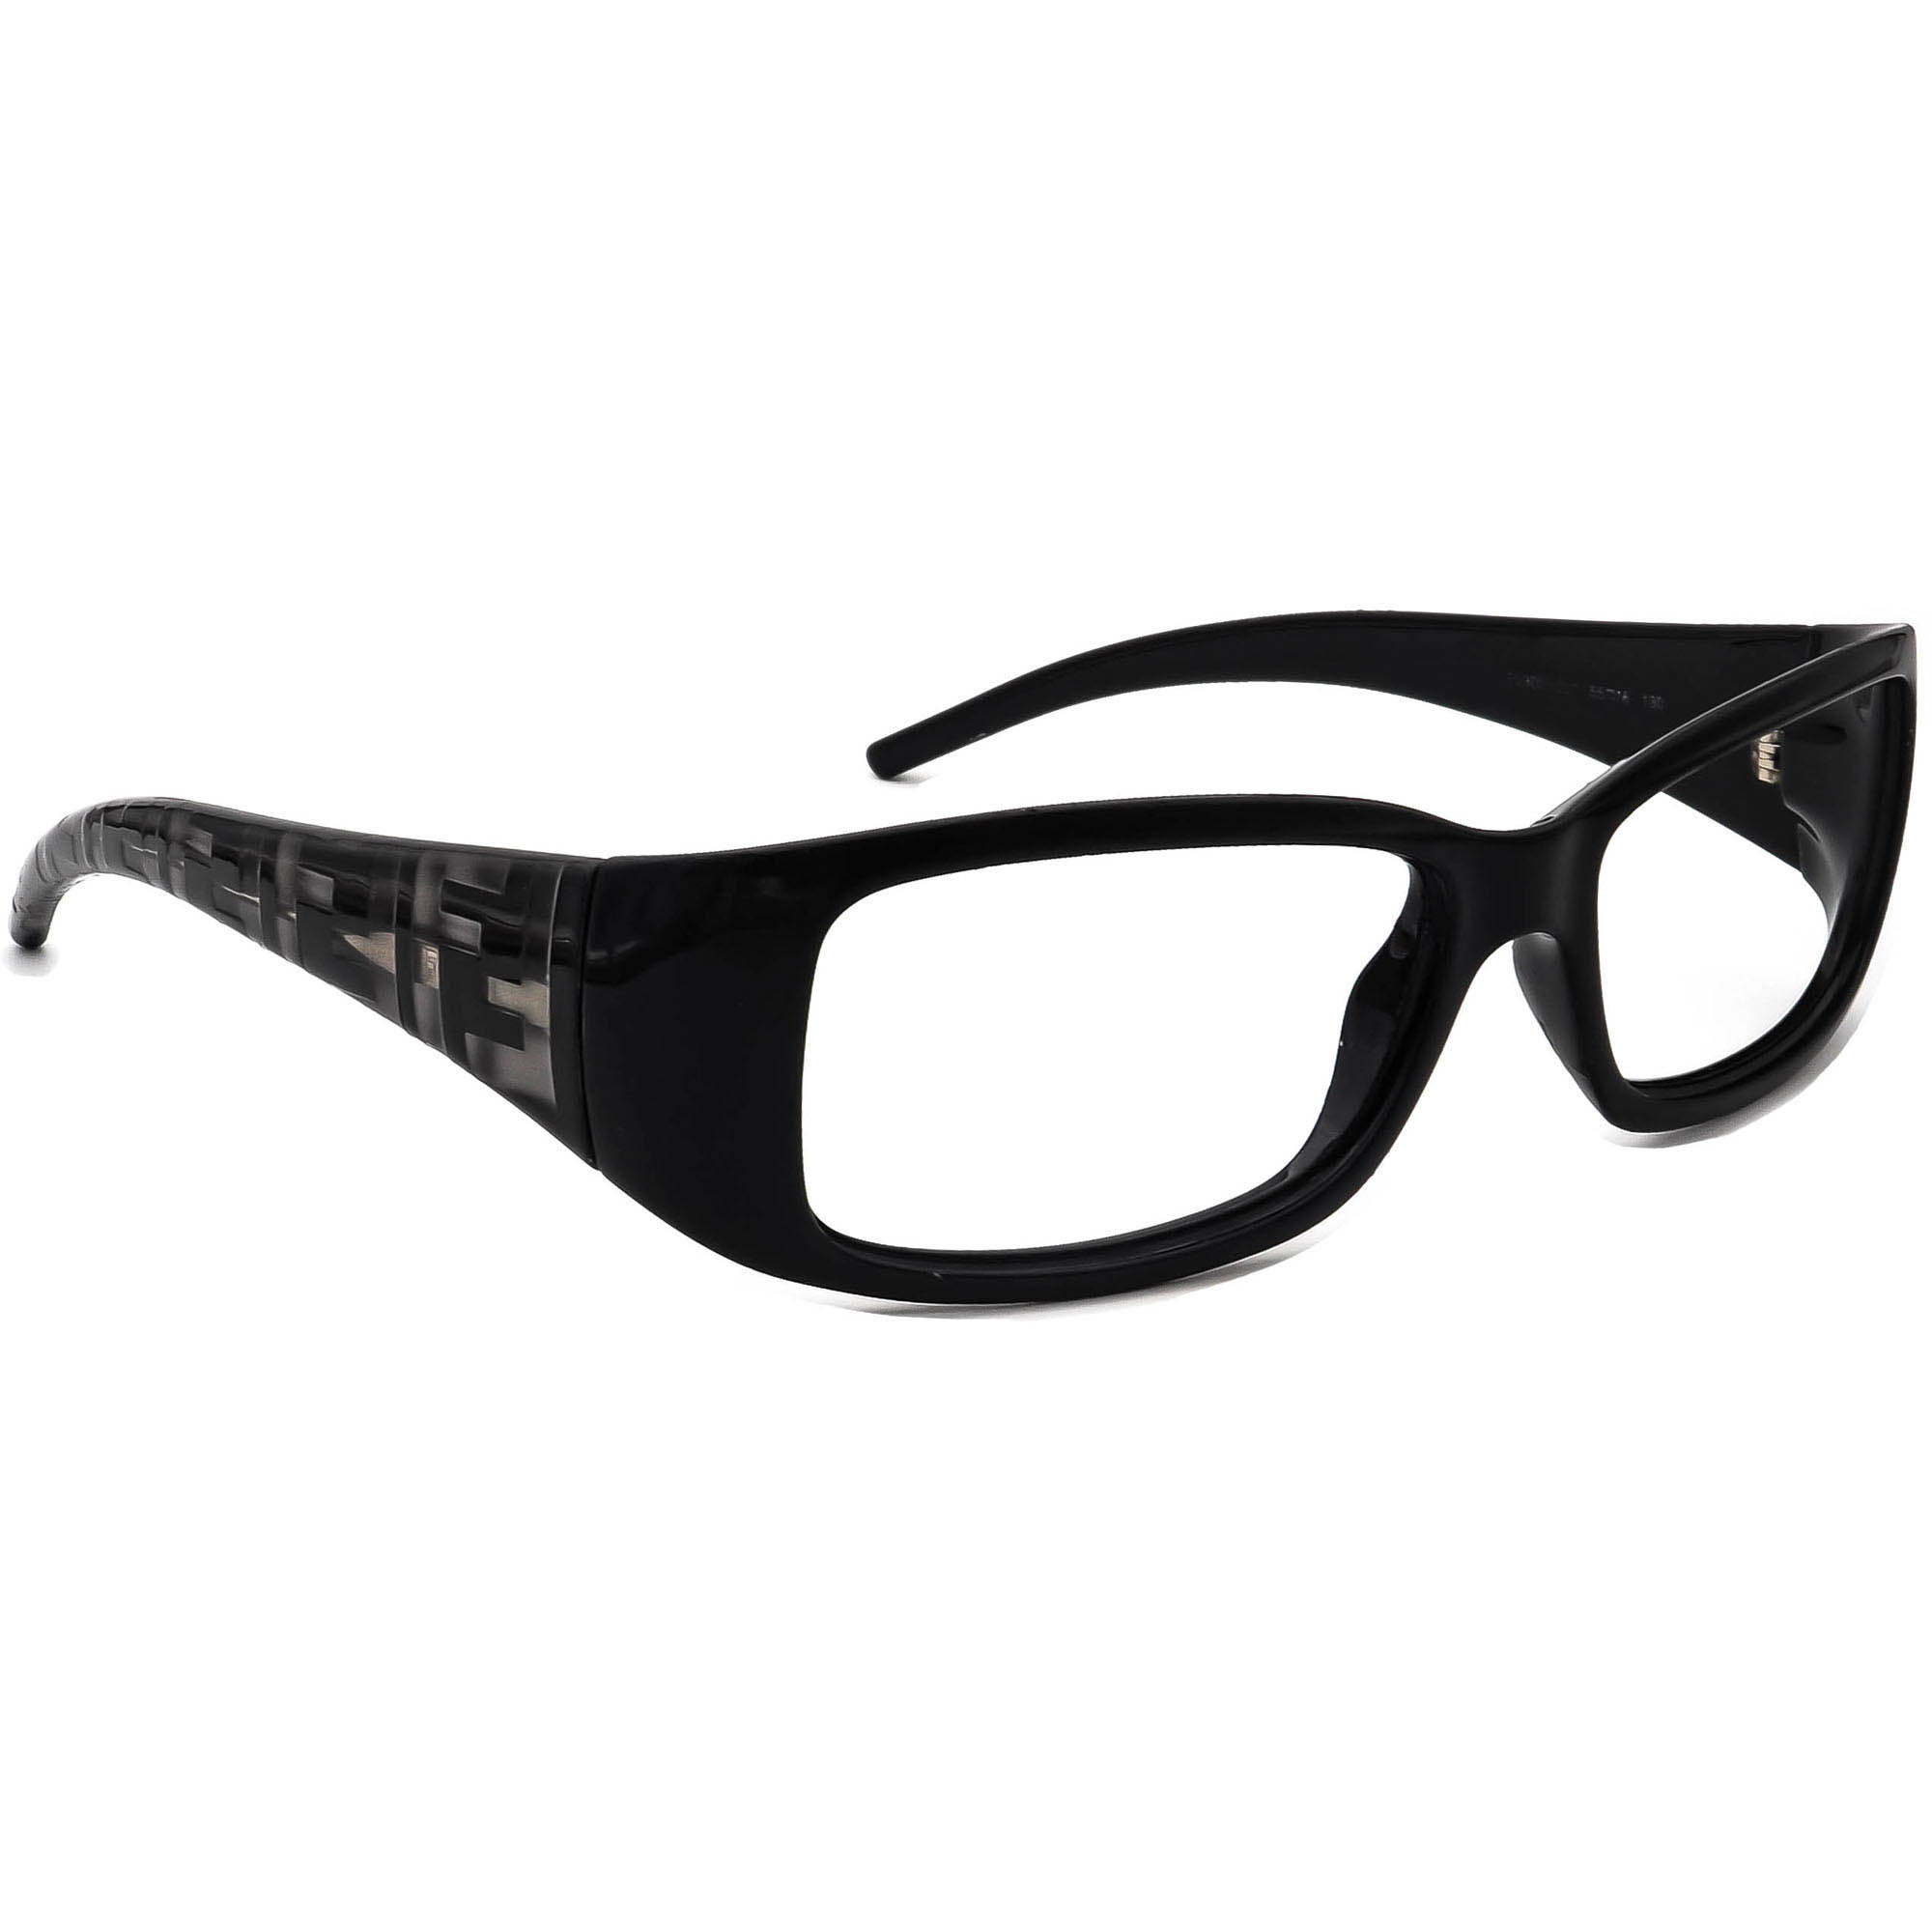 Fendi Women's Eyeglasses FS300 001 Black Rectangular Frame Italy 55[]16 130